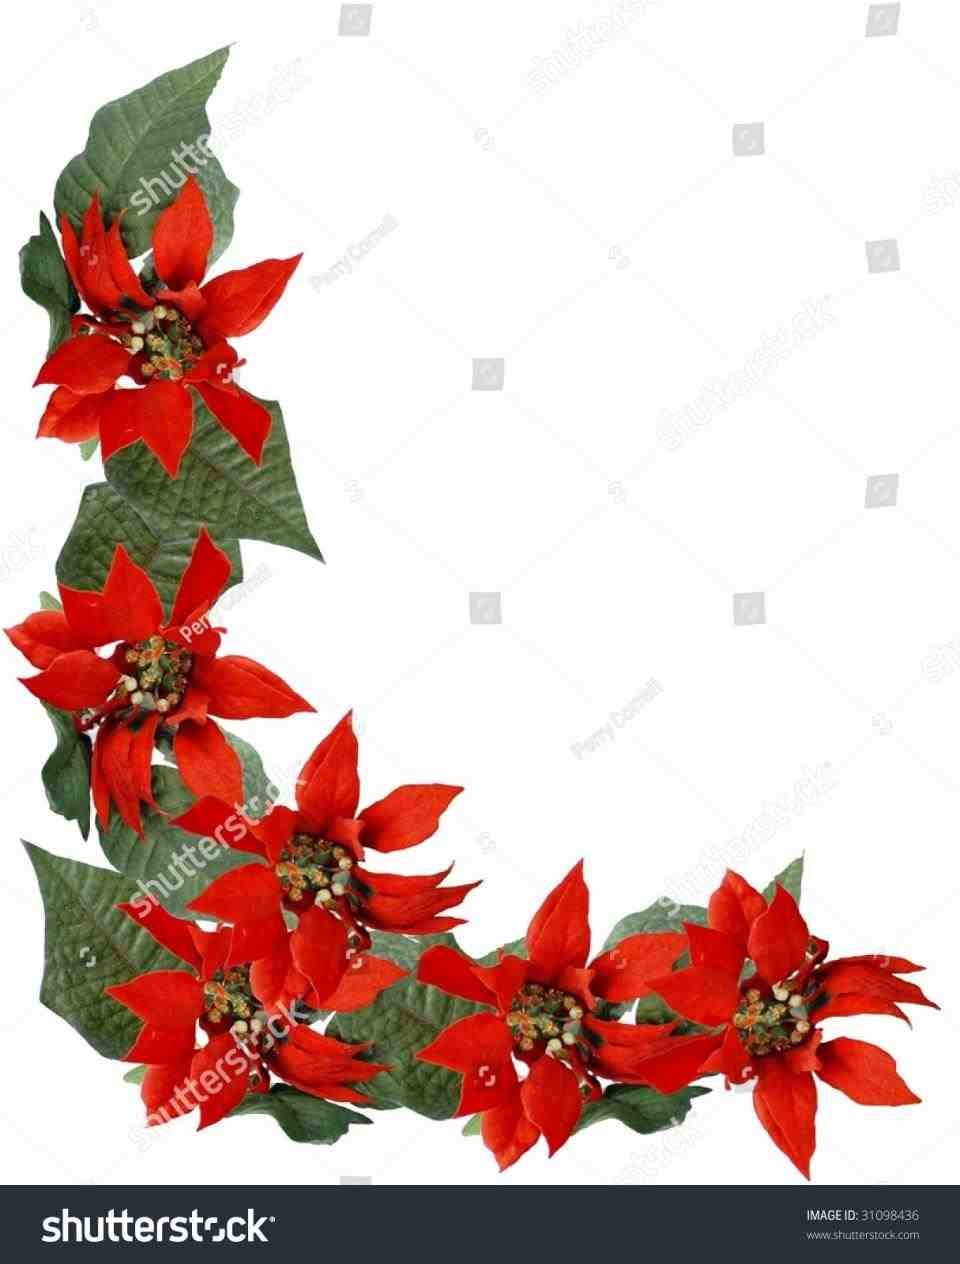 960x1264 S Free Download Clip Art U Happy Holidays! S Christmas Holly Top